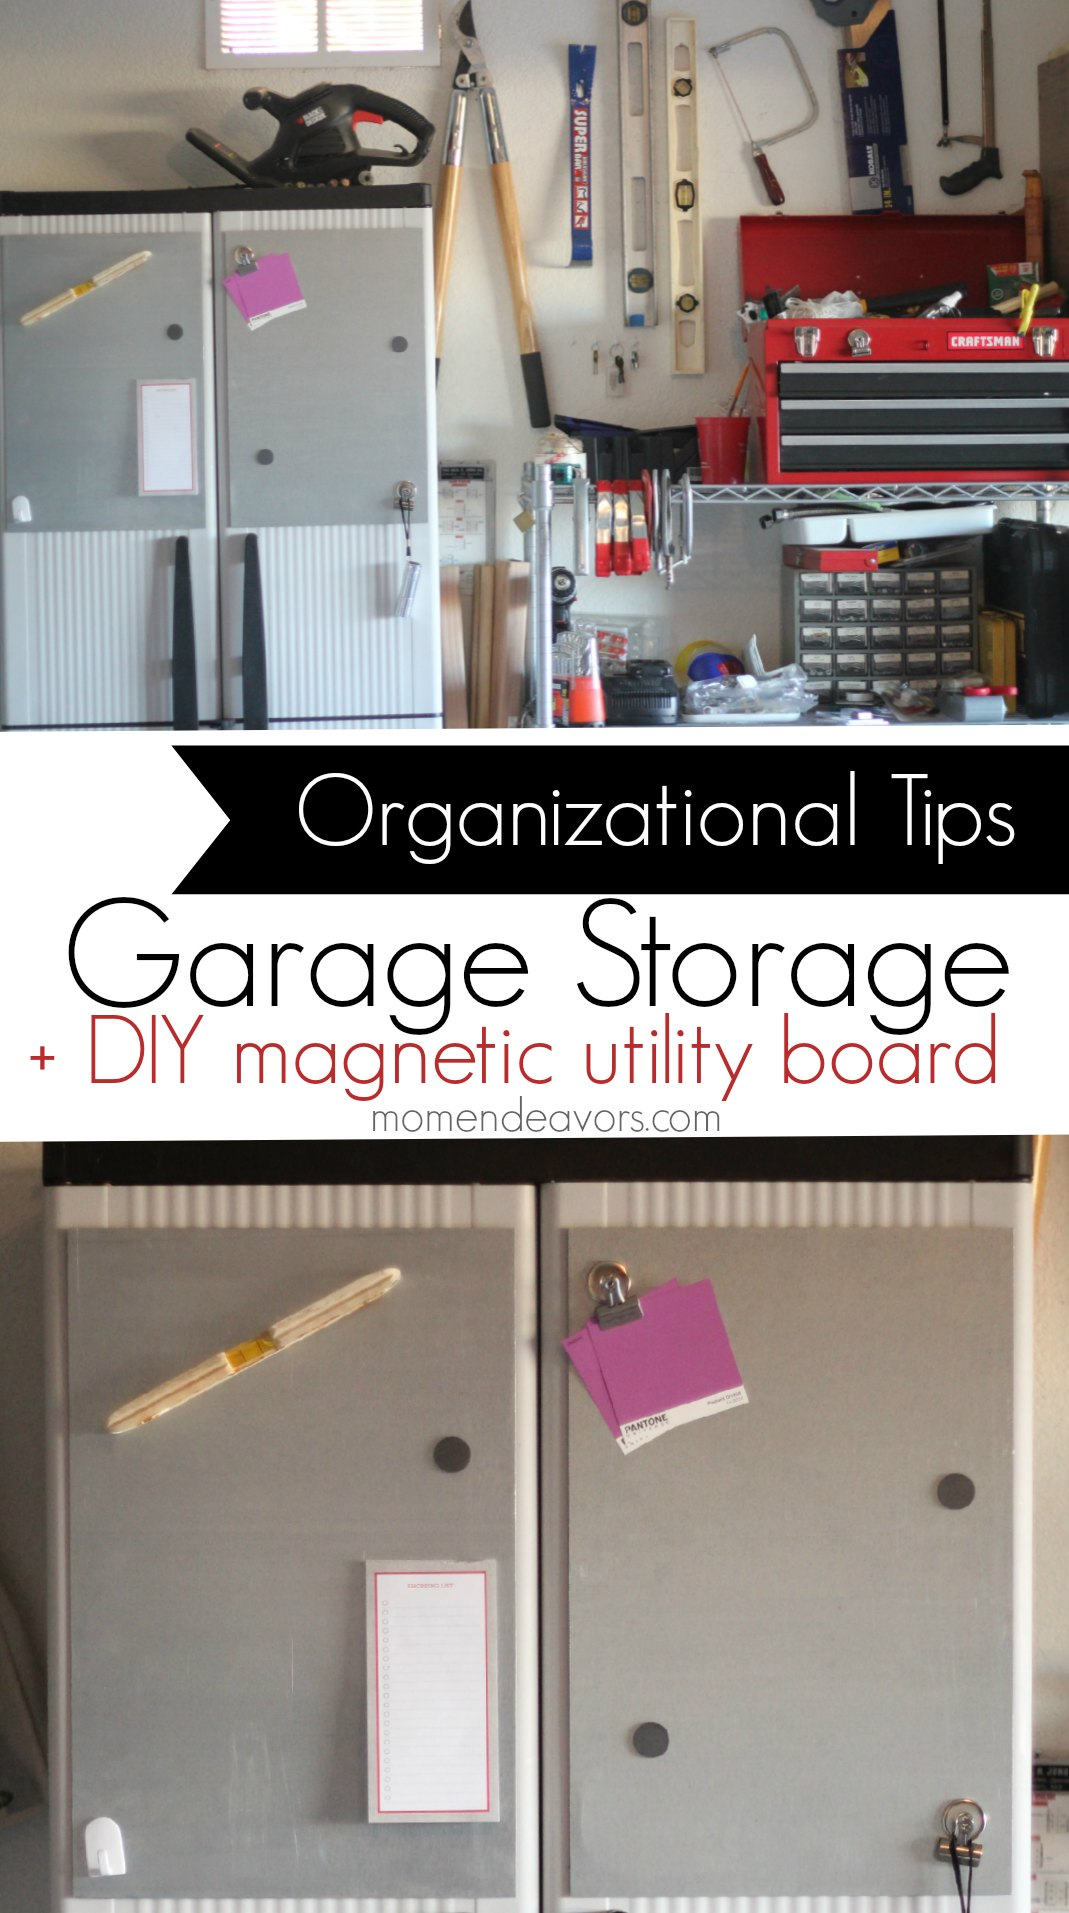 Home Organization Garage Storage Ideas Diy Magnetic Utility Board Mom Endeavors